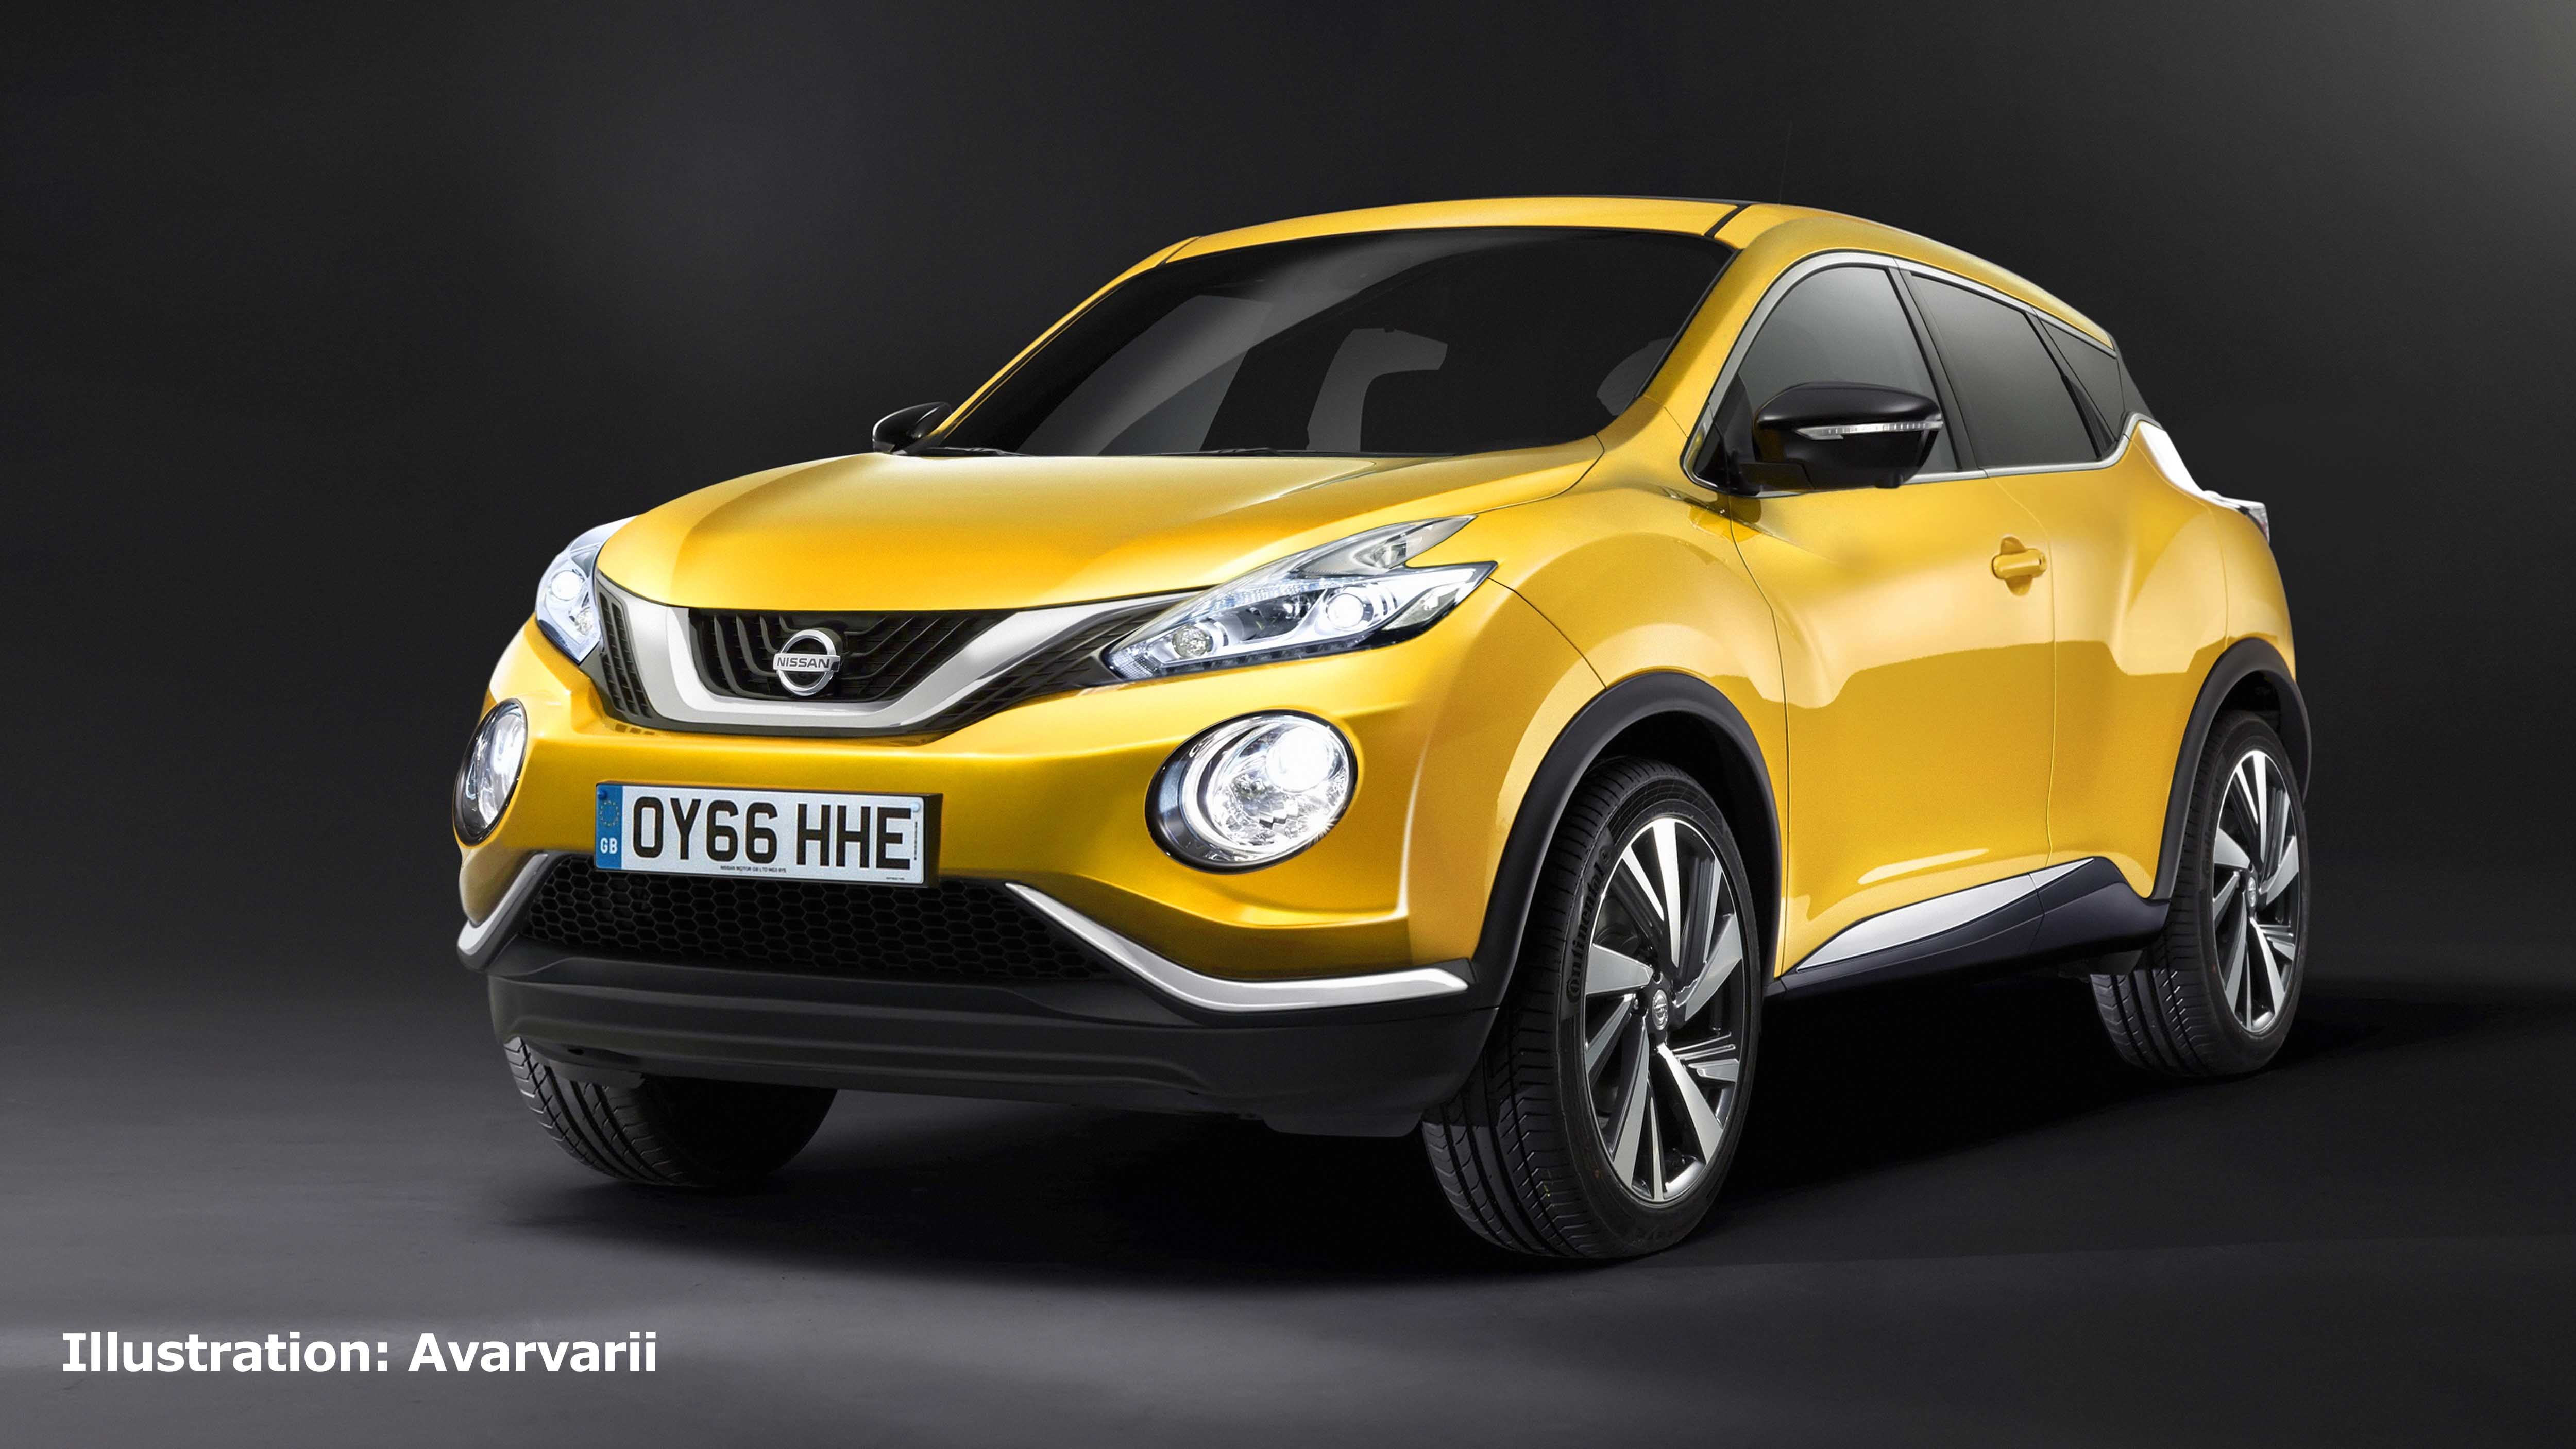 76 Gallery of Best Nissan 2019 Crossover Release Date And Specs Spesification with Best Nissan 2019 Crossover Release Date And Specs